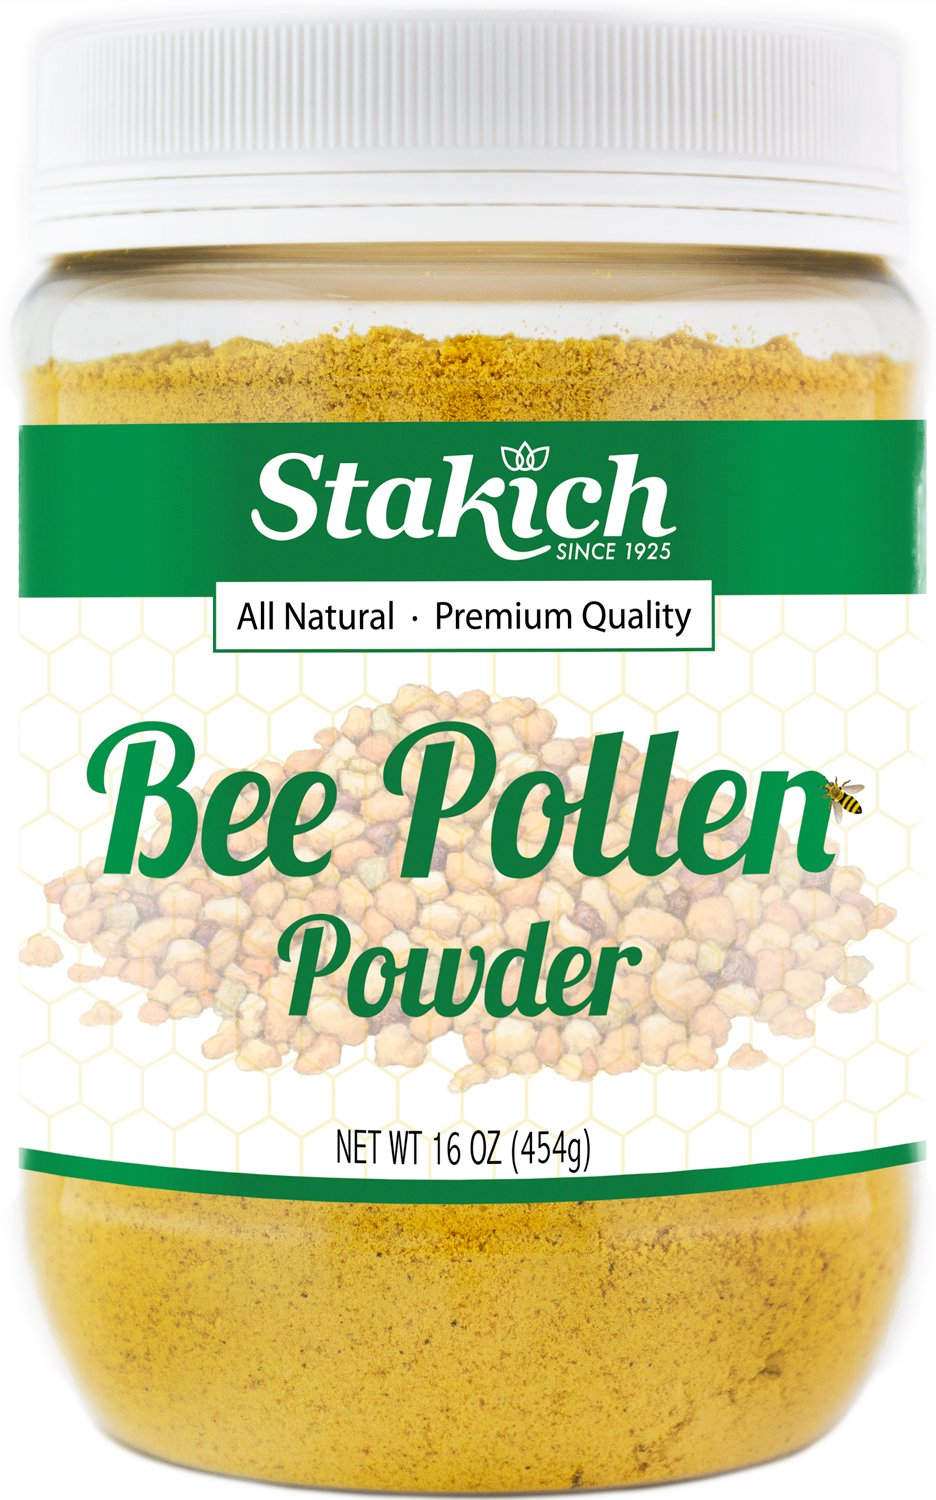 Stakich BEE POLLEN POWDER 1 lb (16 oz) - 100% Pure, Natural, Top Quality -